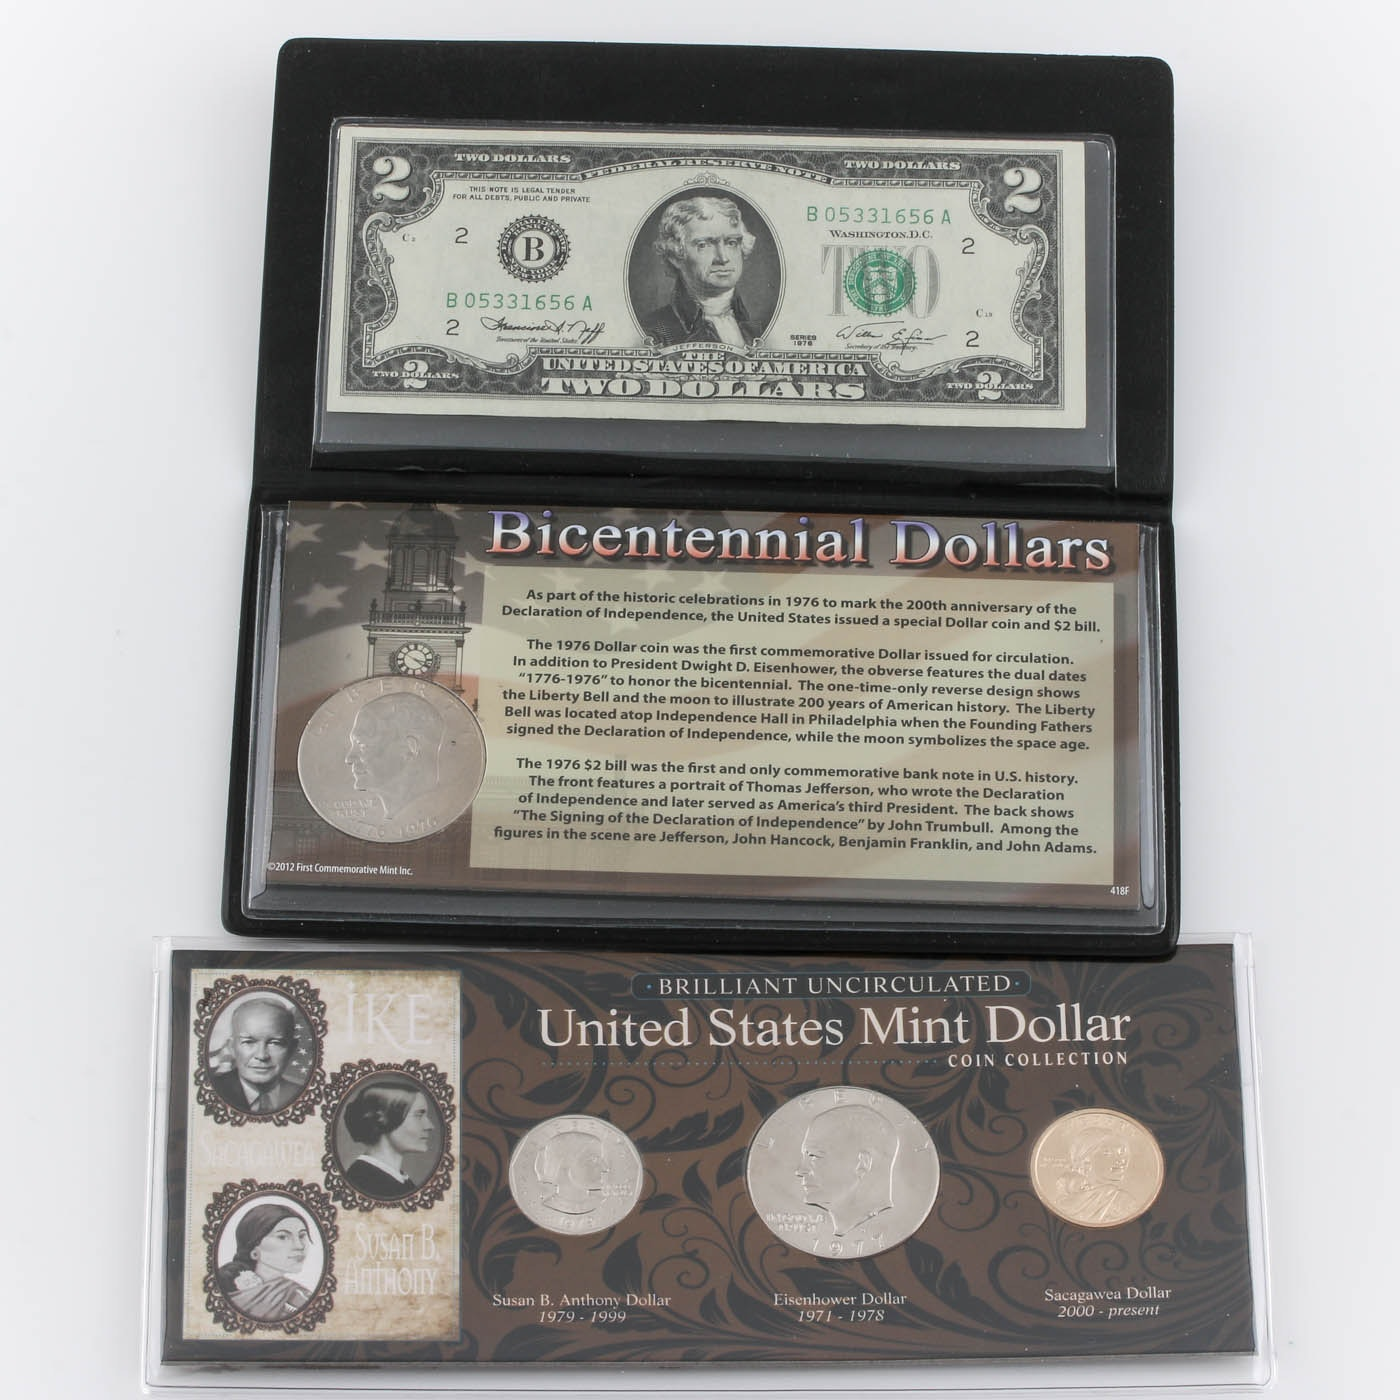 Bicentennial Dollar Set and a United States Mint Dollar Coin Collection